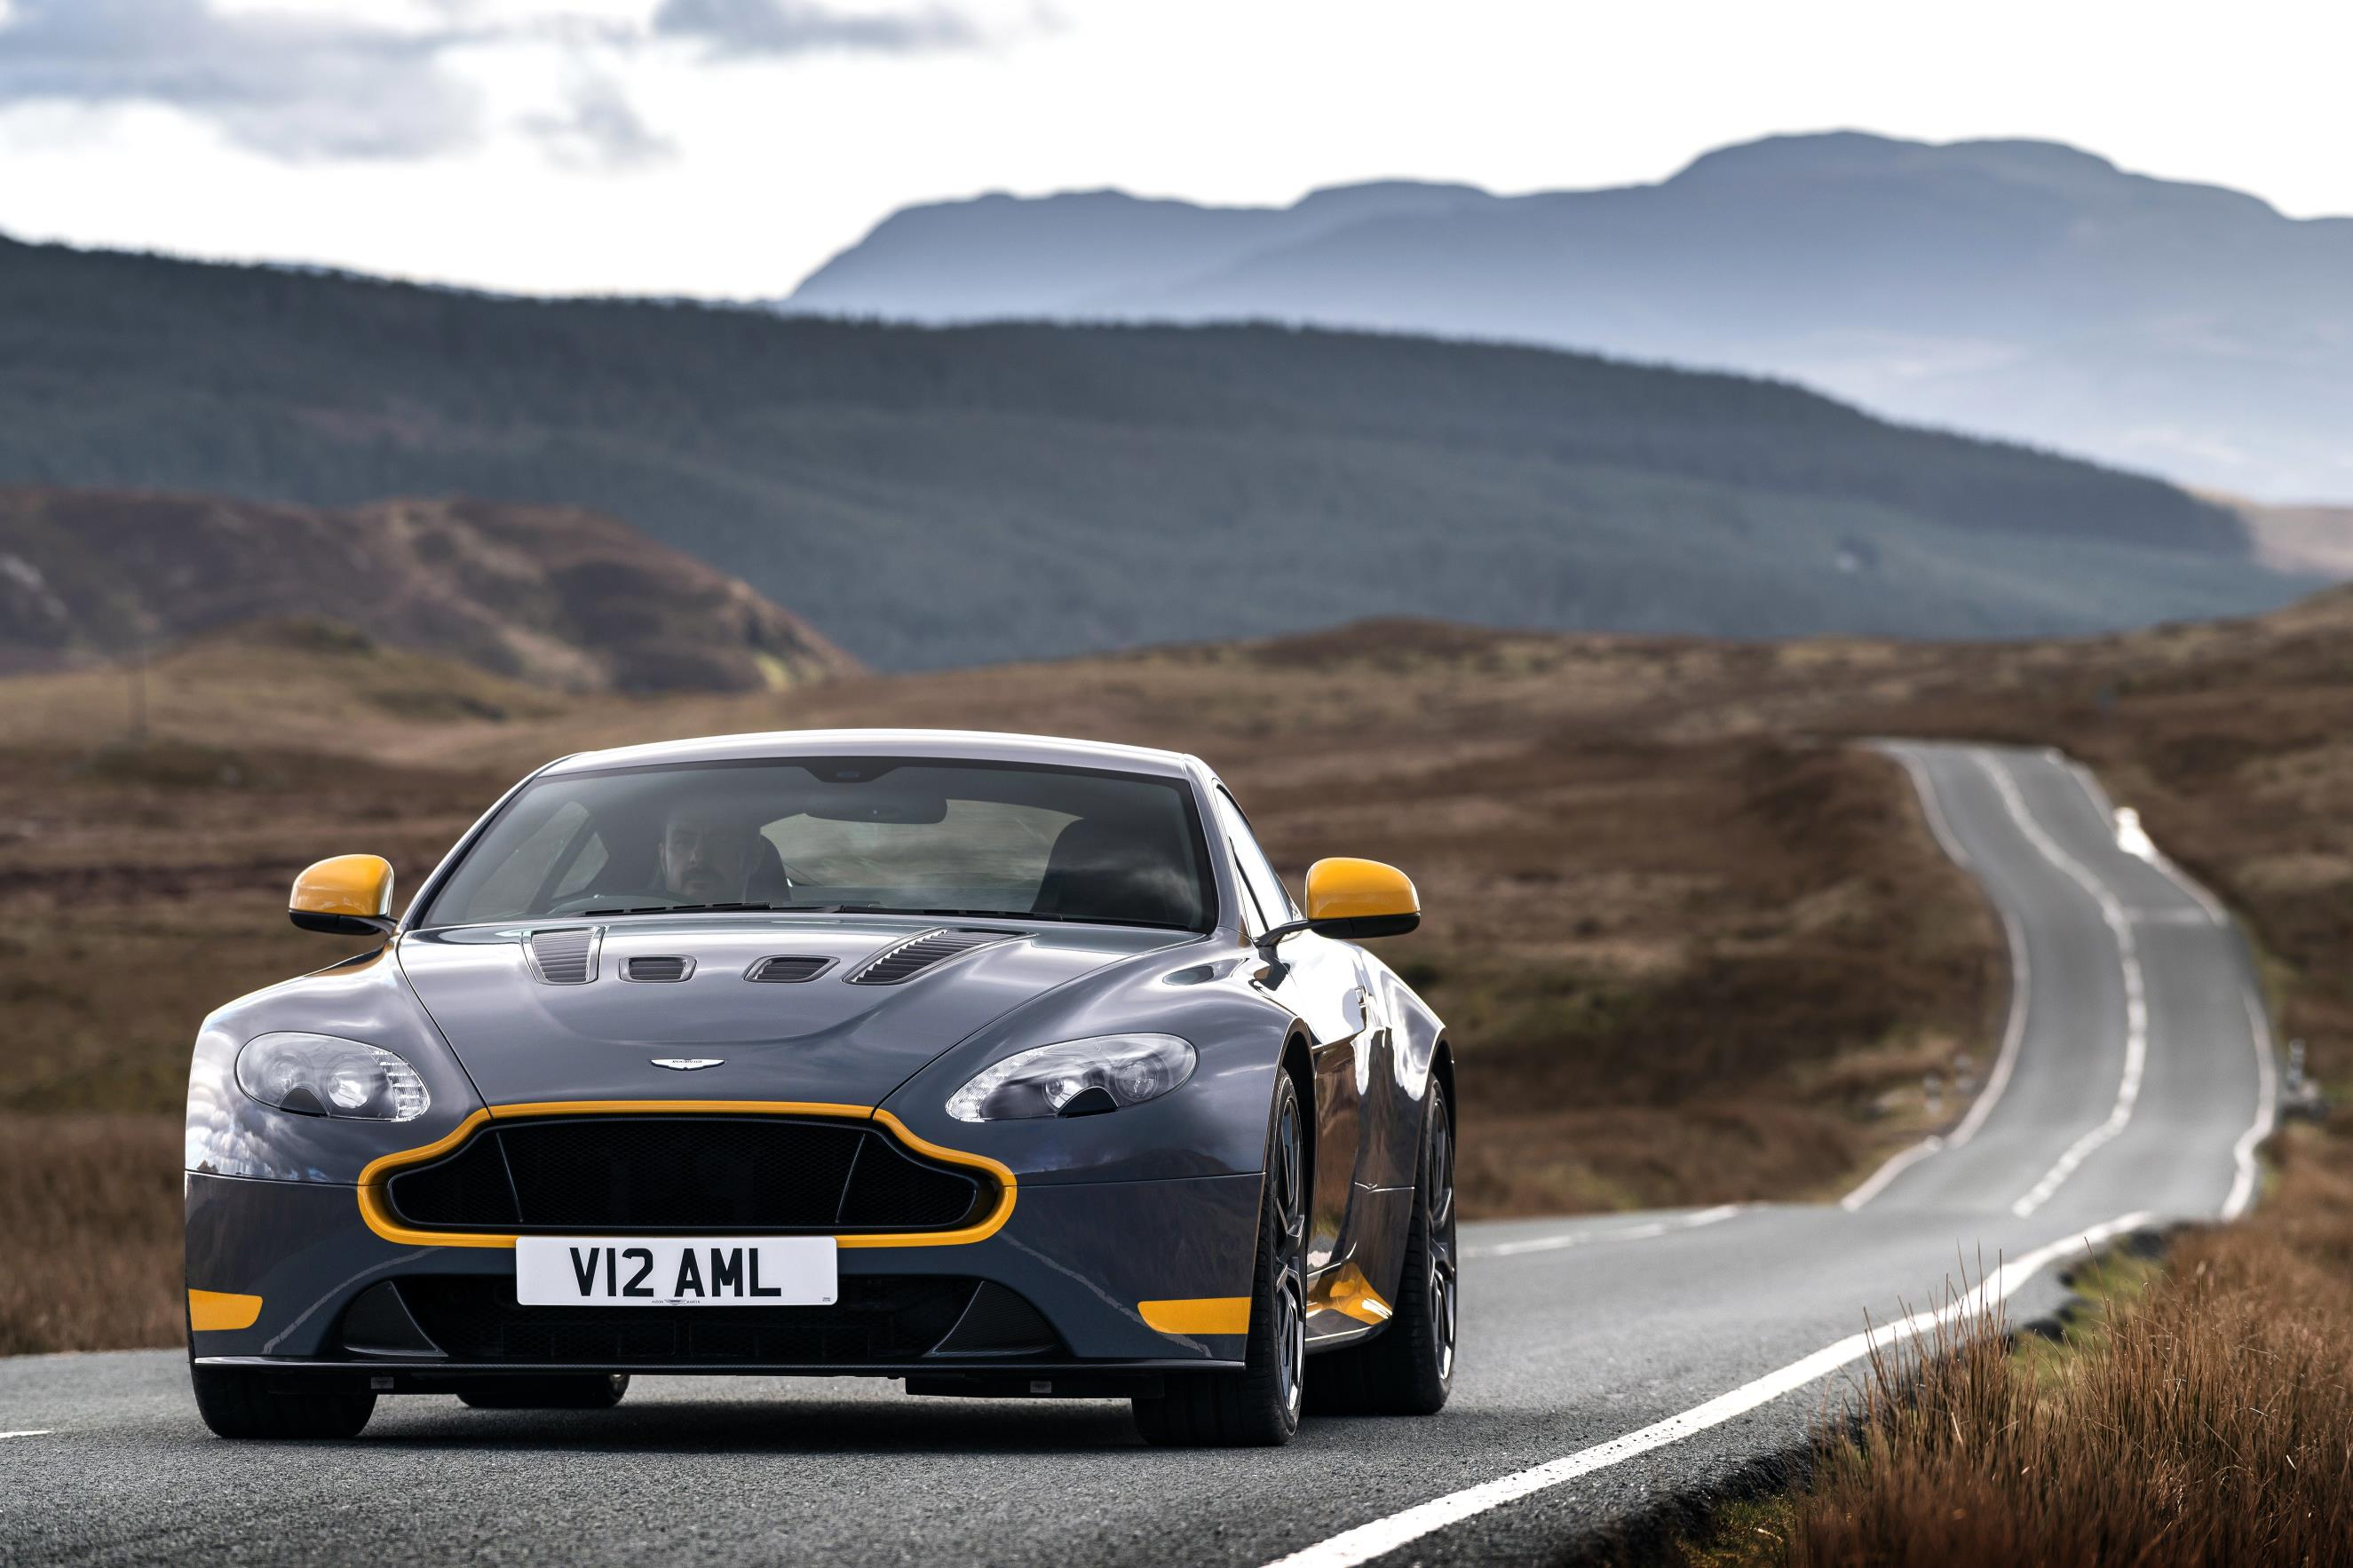 2017 aston martin v12 vantage s available with 7 speed dog leg manual gearbox autoevolution. Black Bedroom Furniture Sets. Home Design Ideas